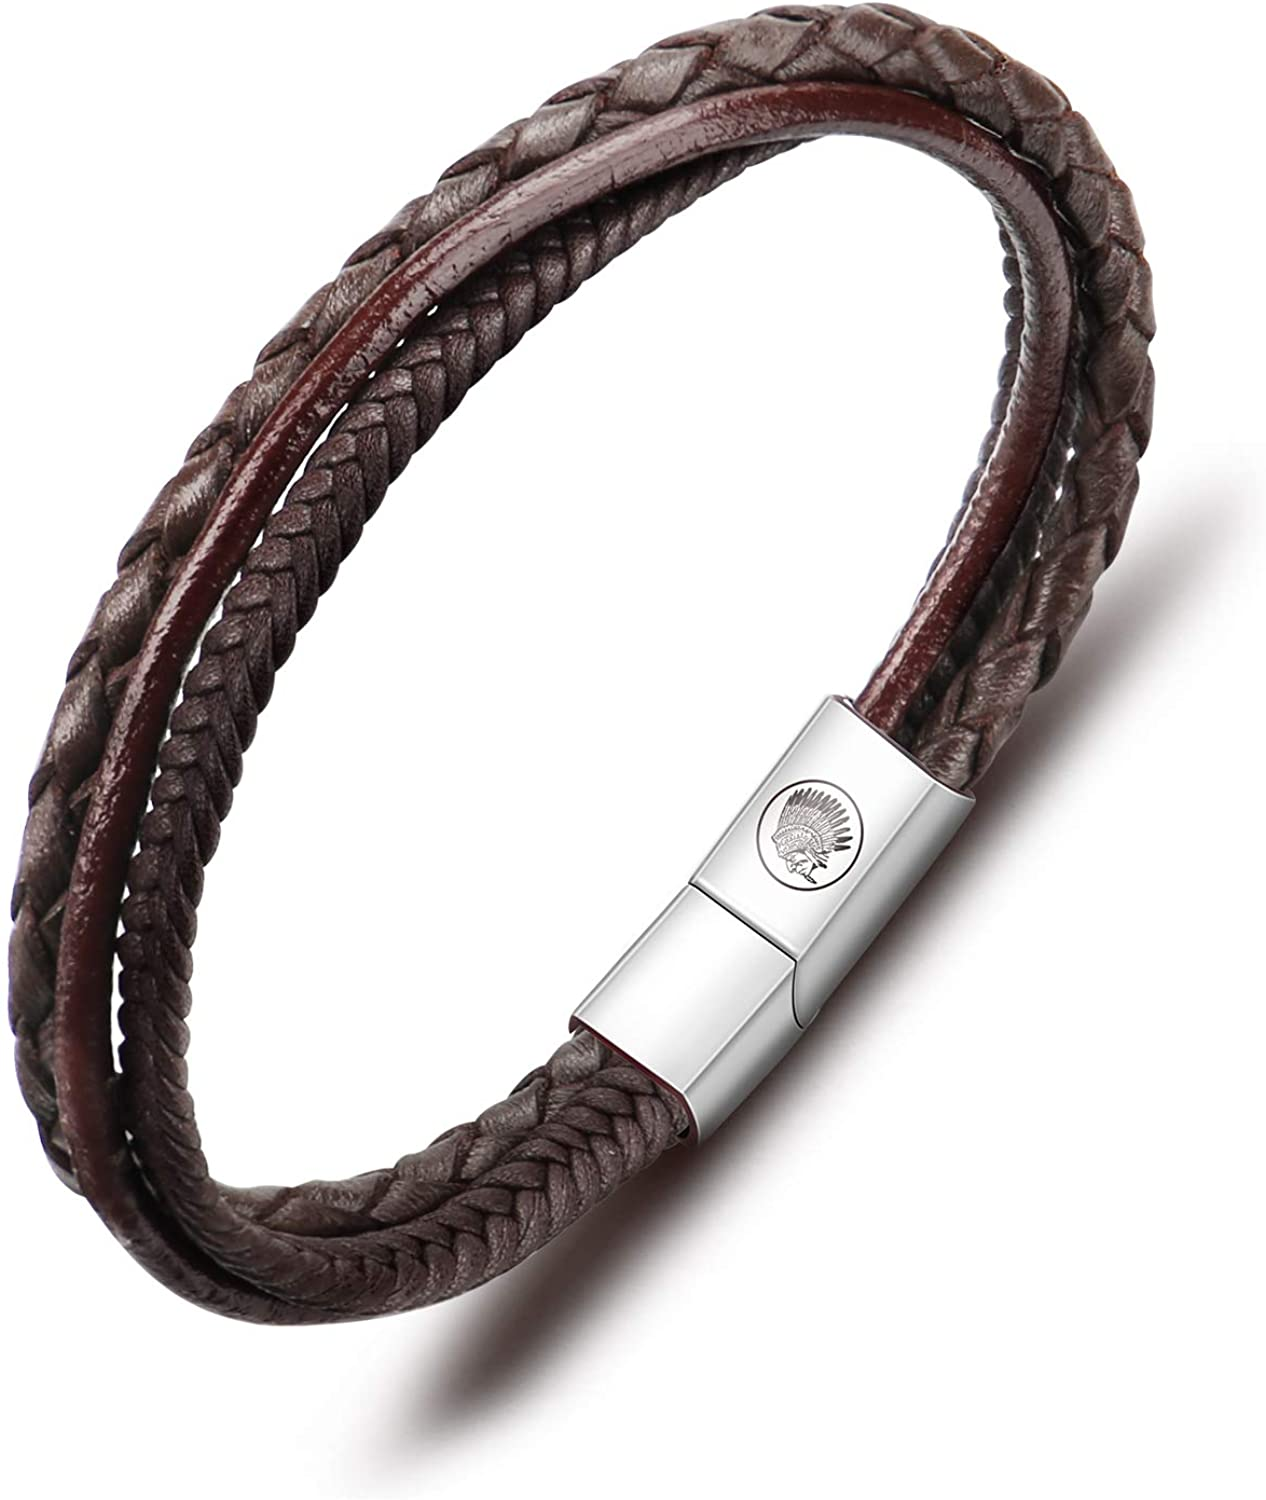 Casisto.J Leather Bracelet for Men Magnetic Steel Clasp Cowhide Braided Mens Bracelet 7.5-8.7 Inches, with Premium Gift Box